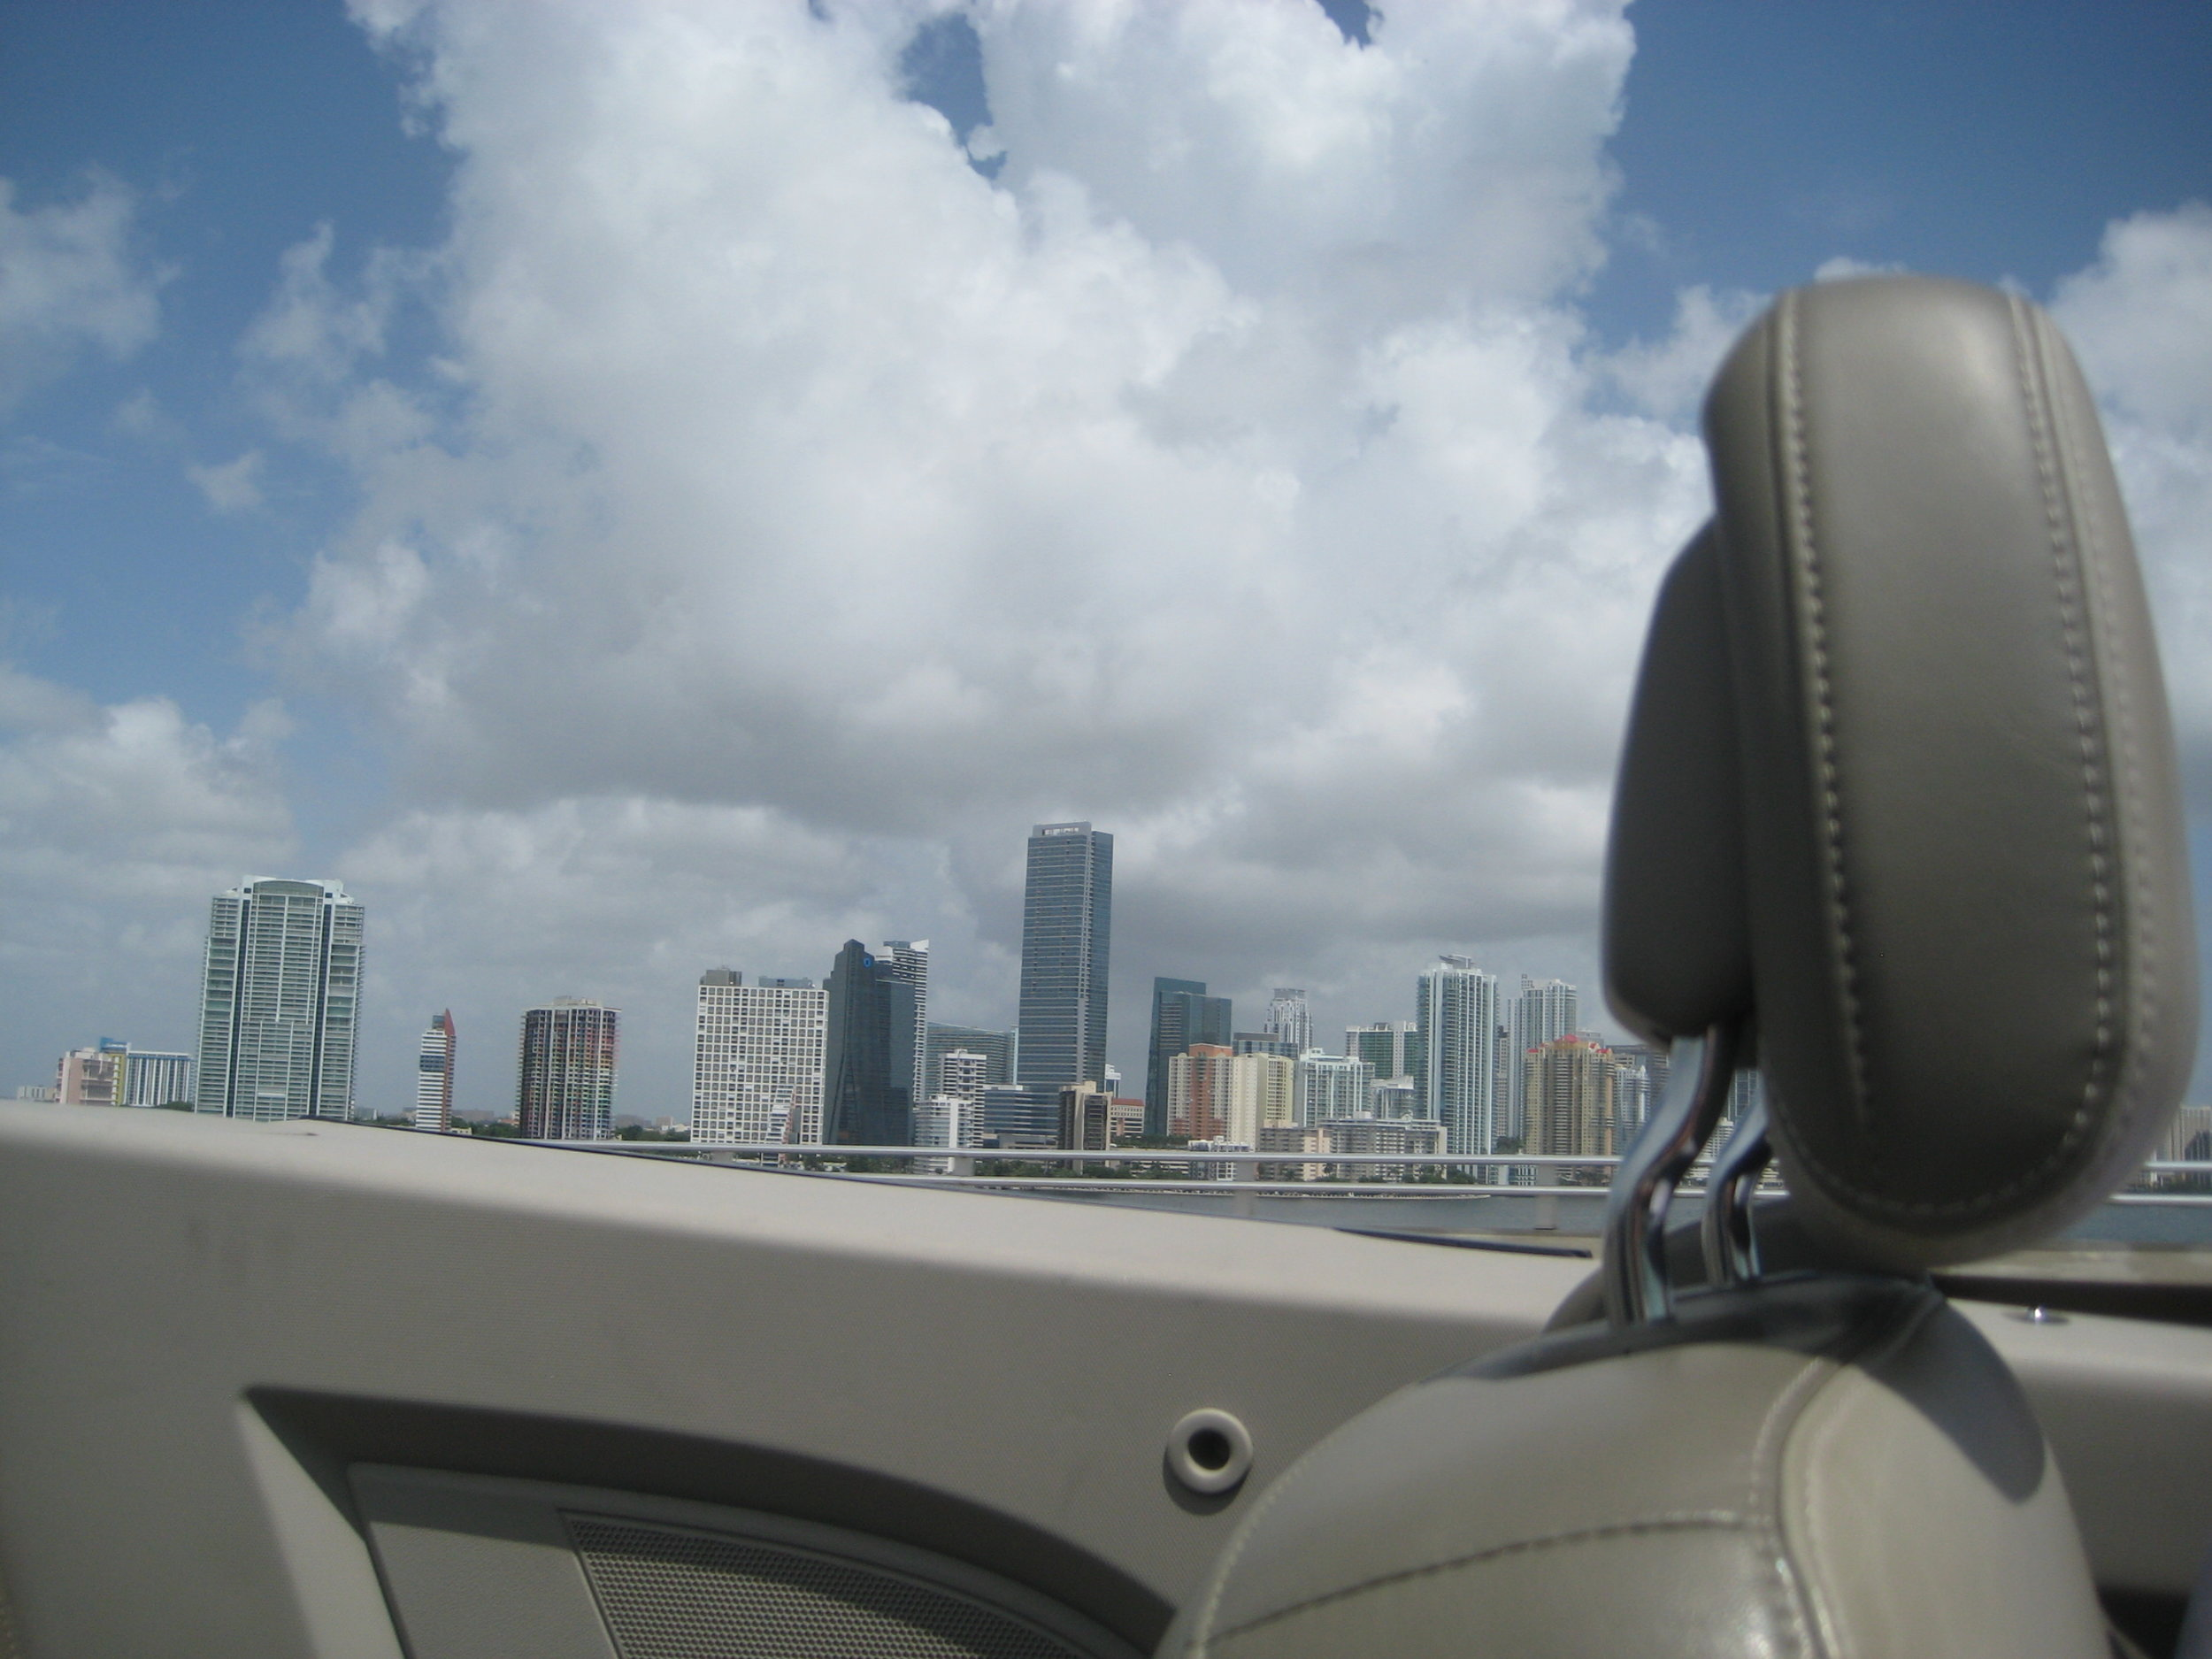 I would highly recommend south Florida in a convertible. But let's face it - we could never keep up with this kind of lifestyle long term. These luxuries will just have to stay luxuries...